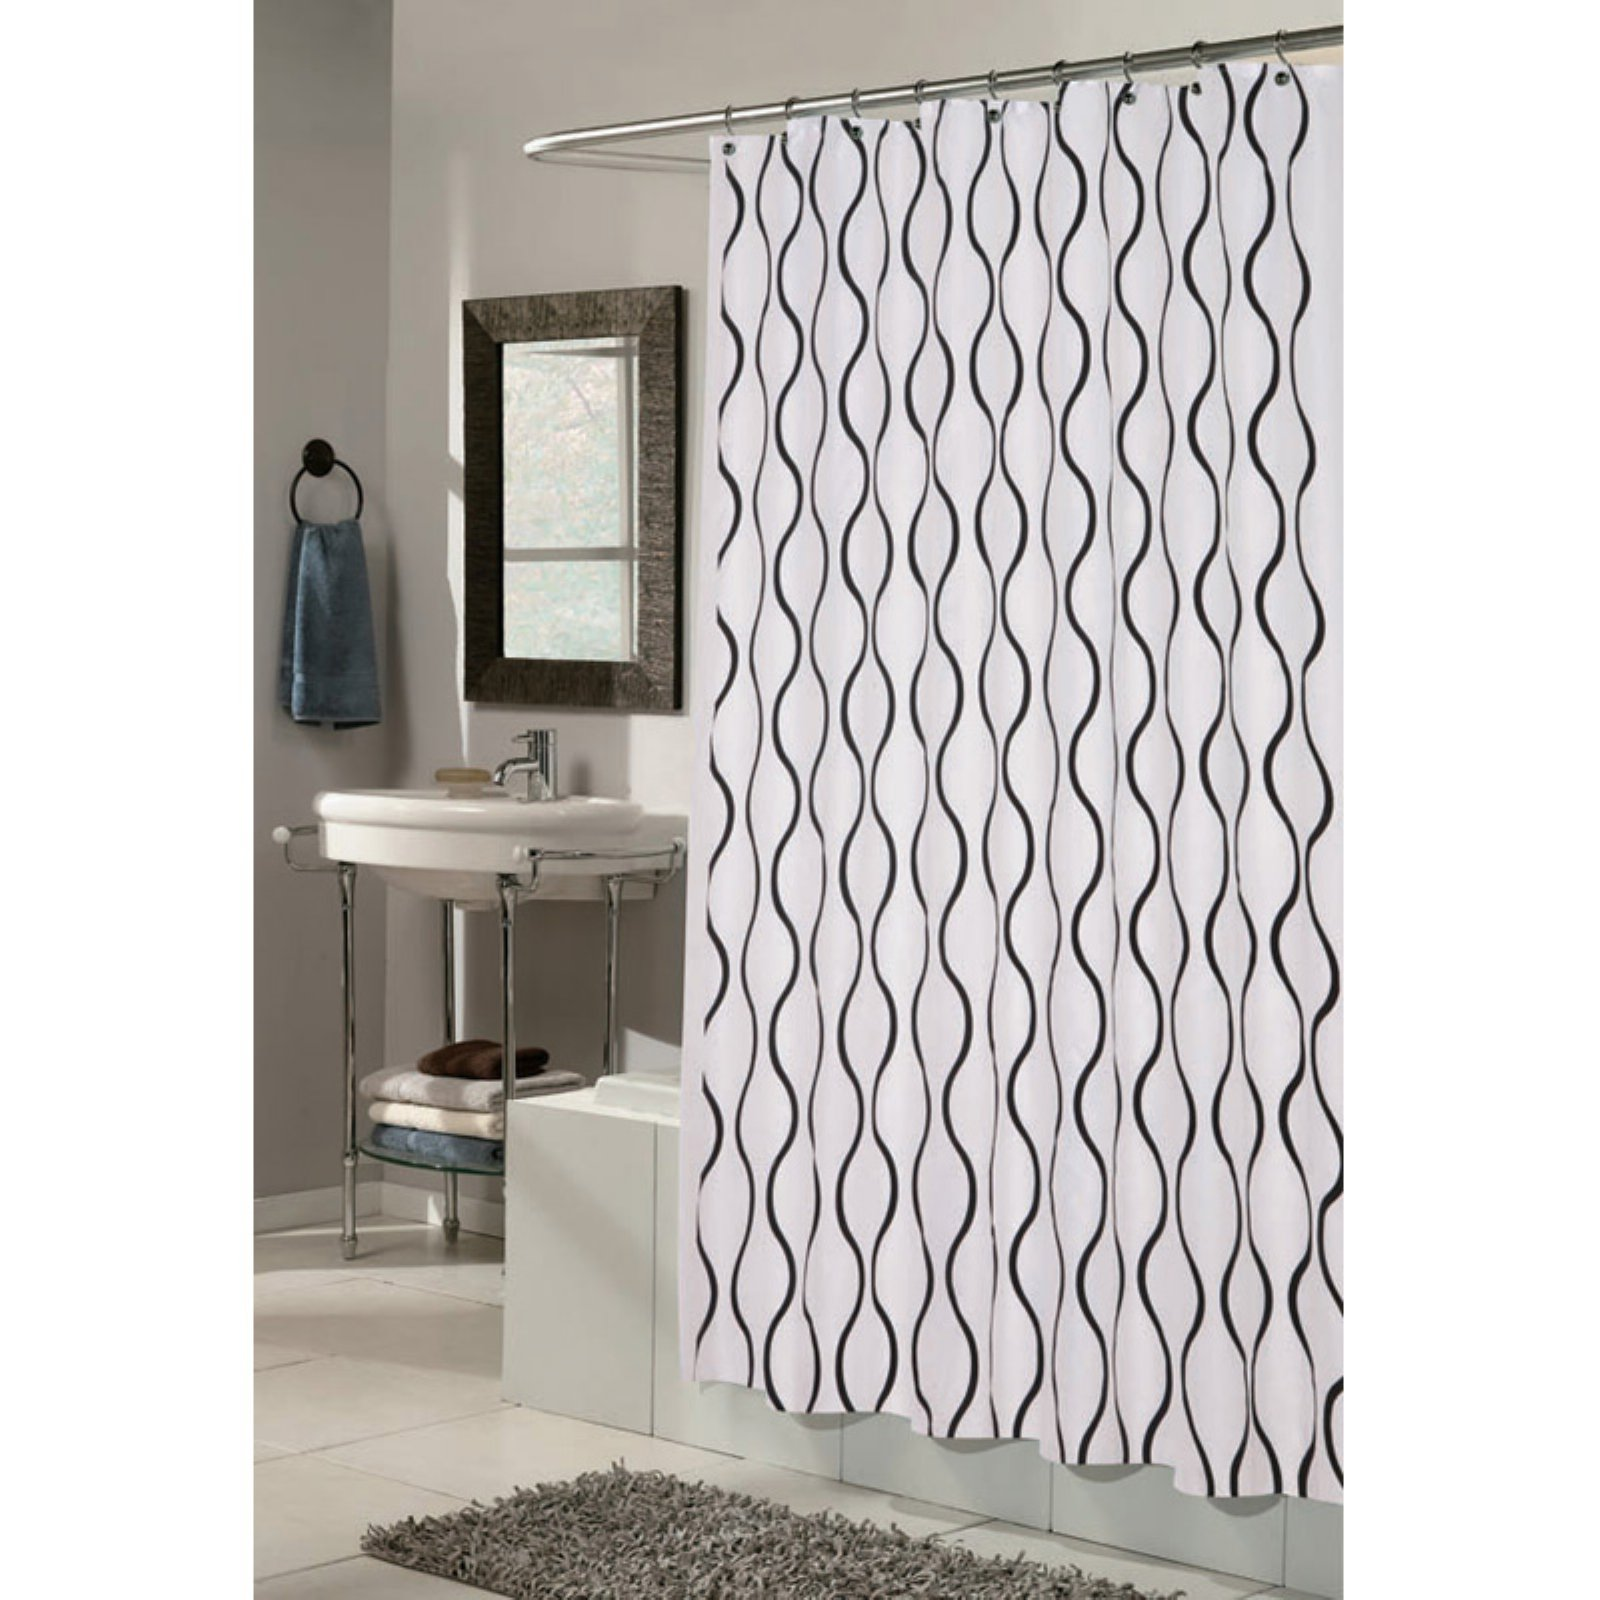 Carnation Home Fashions Geneva Curved Vertical Lines Fabric Shower Curtain